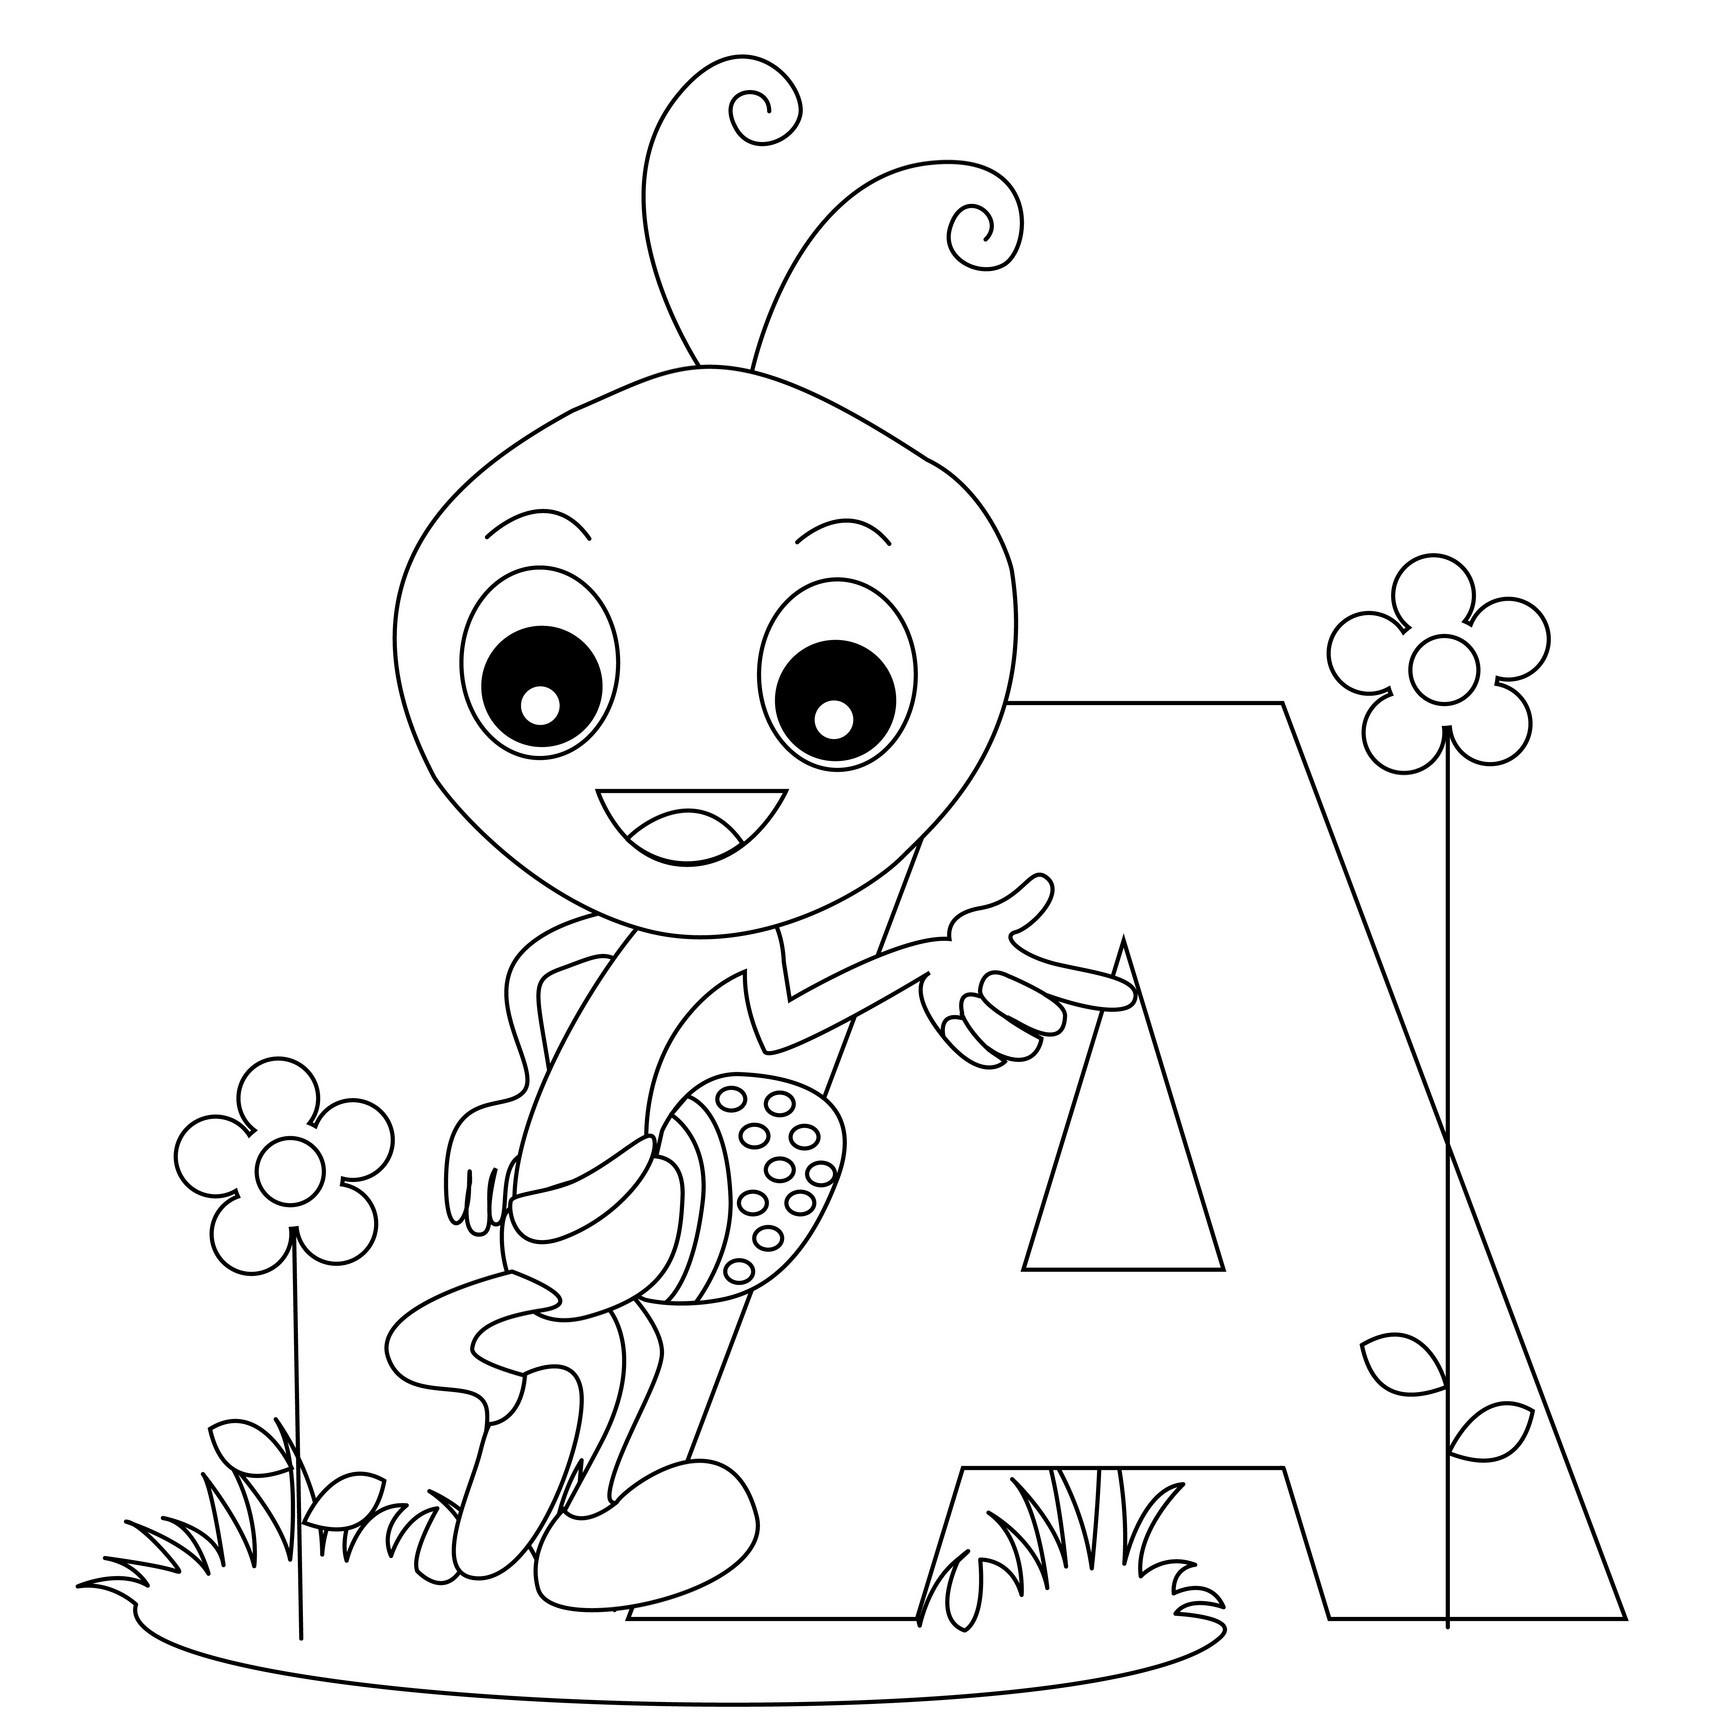 Coloring Pages Coloring Pages For The Letter A free printable alphabet coloring pages for kids best letter a